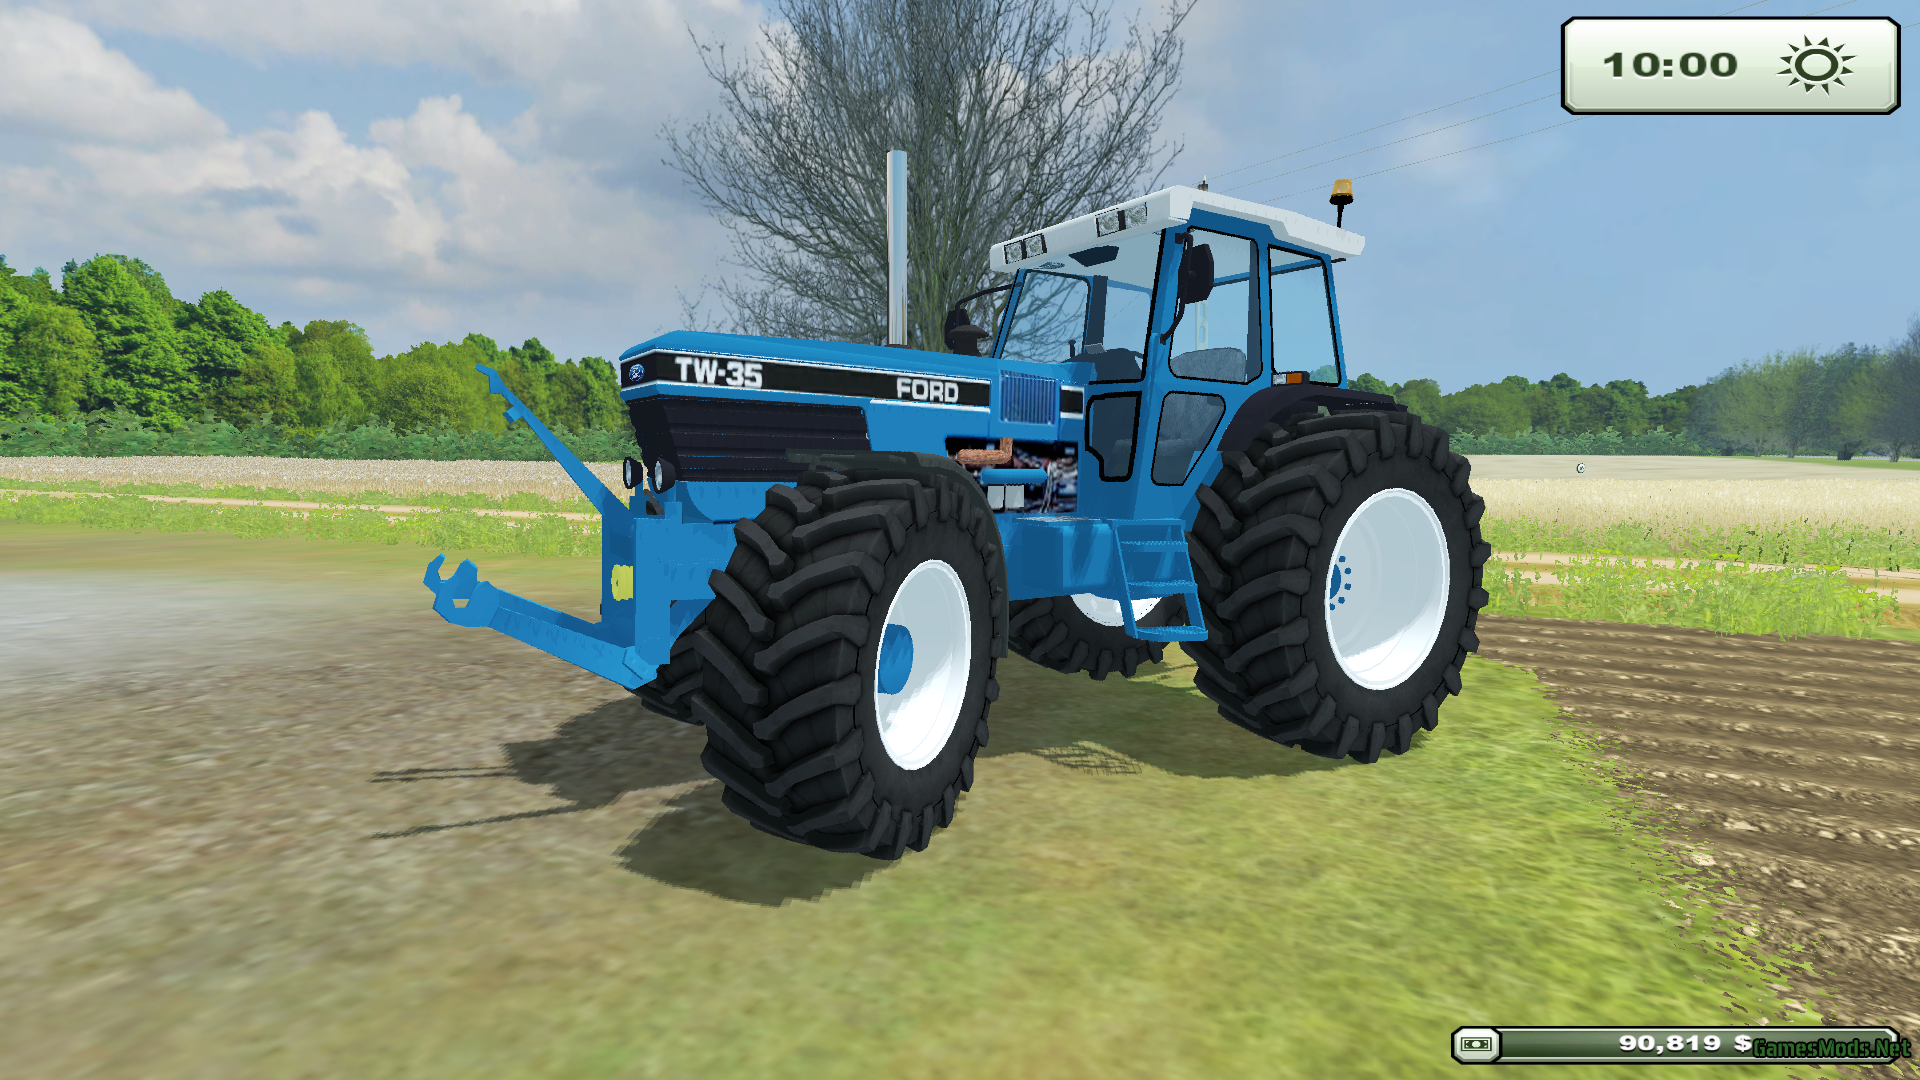 Ford Farming Simulator 2015 Ford Tw35 Farming Simulator